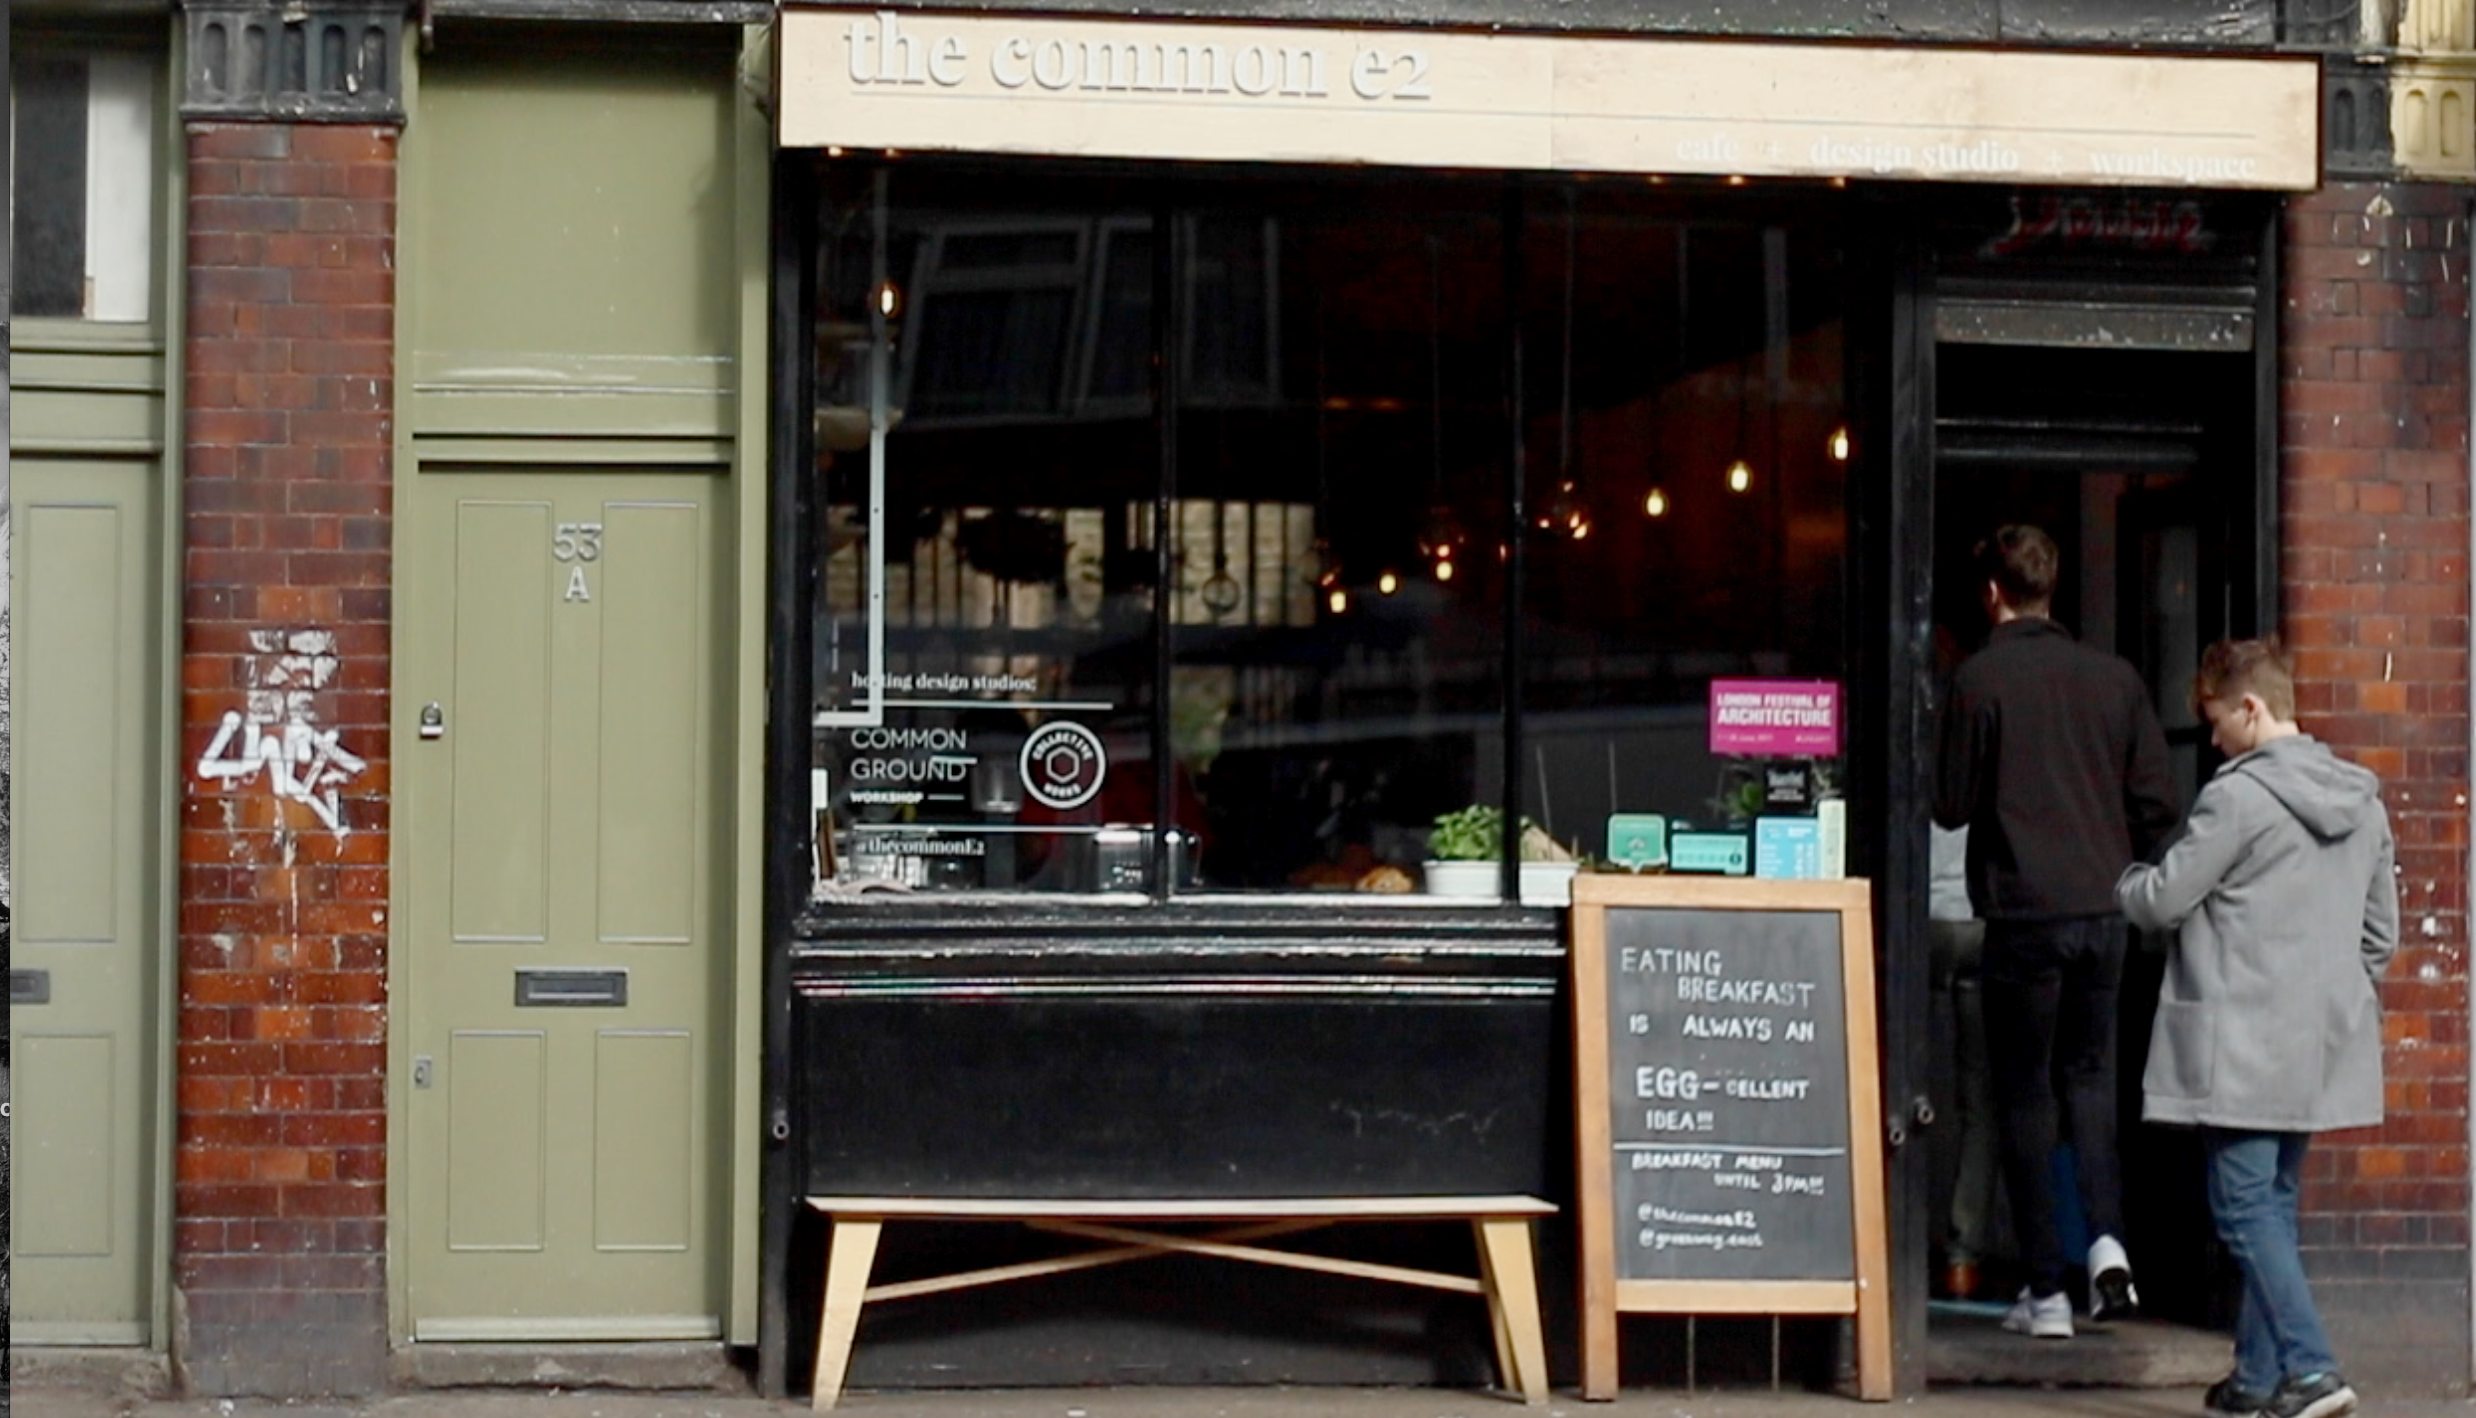 the common e2 open 7 days a week with all day brunch